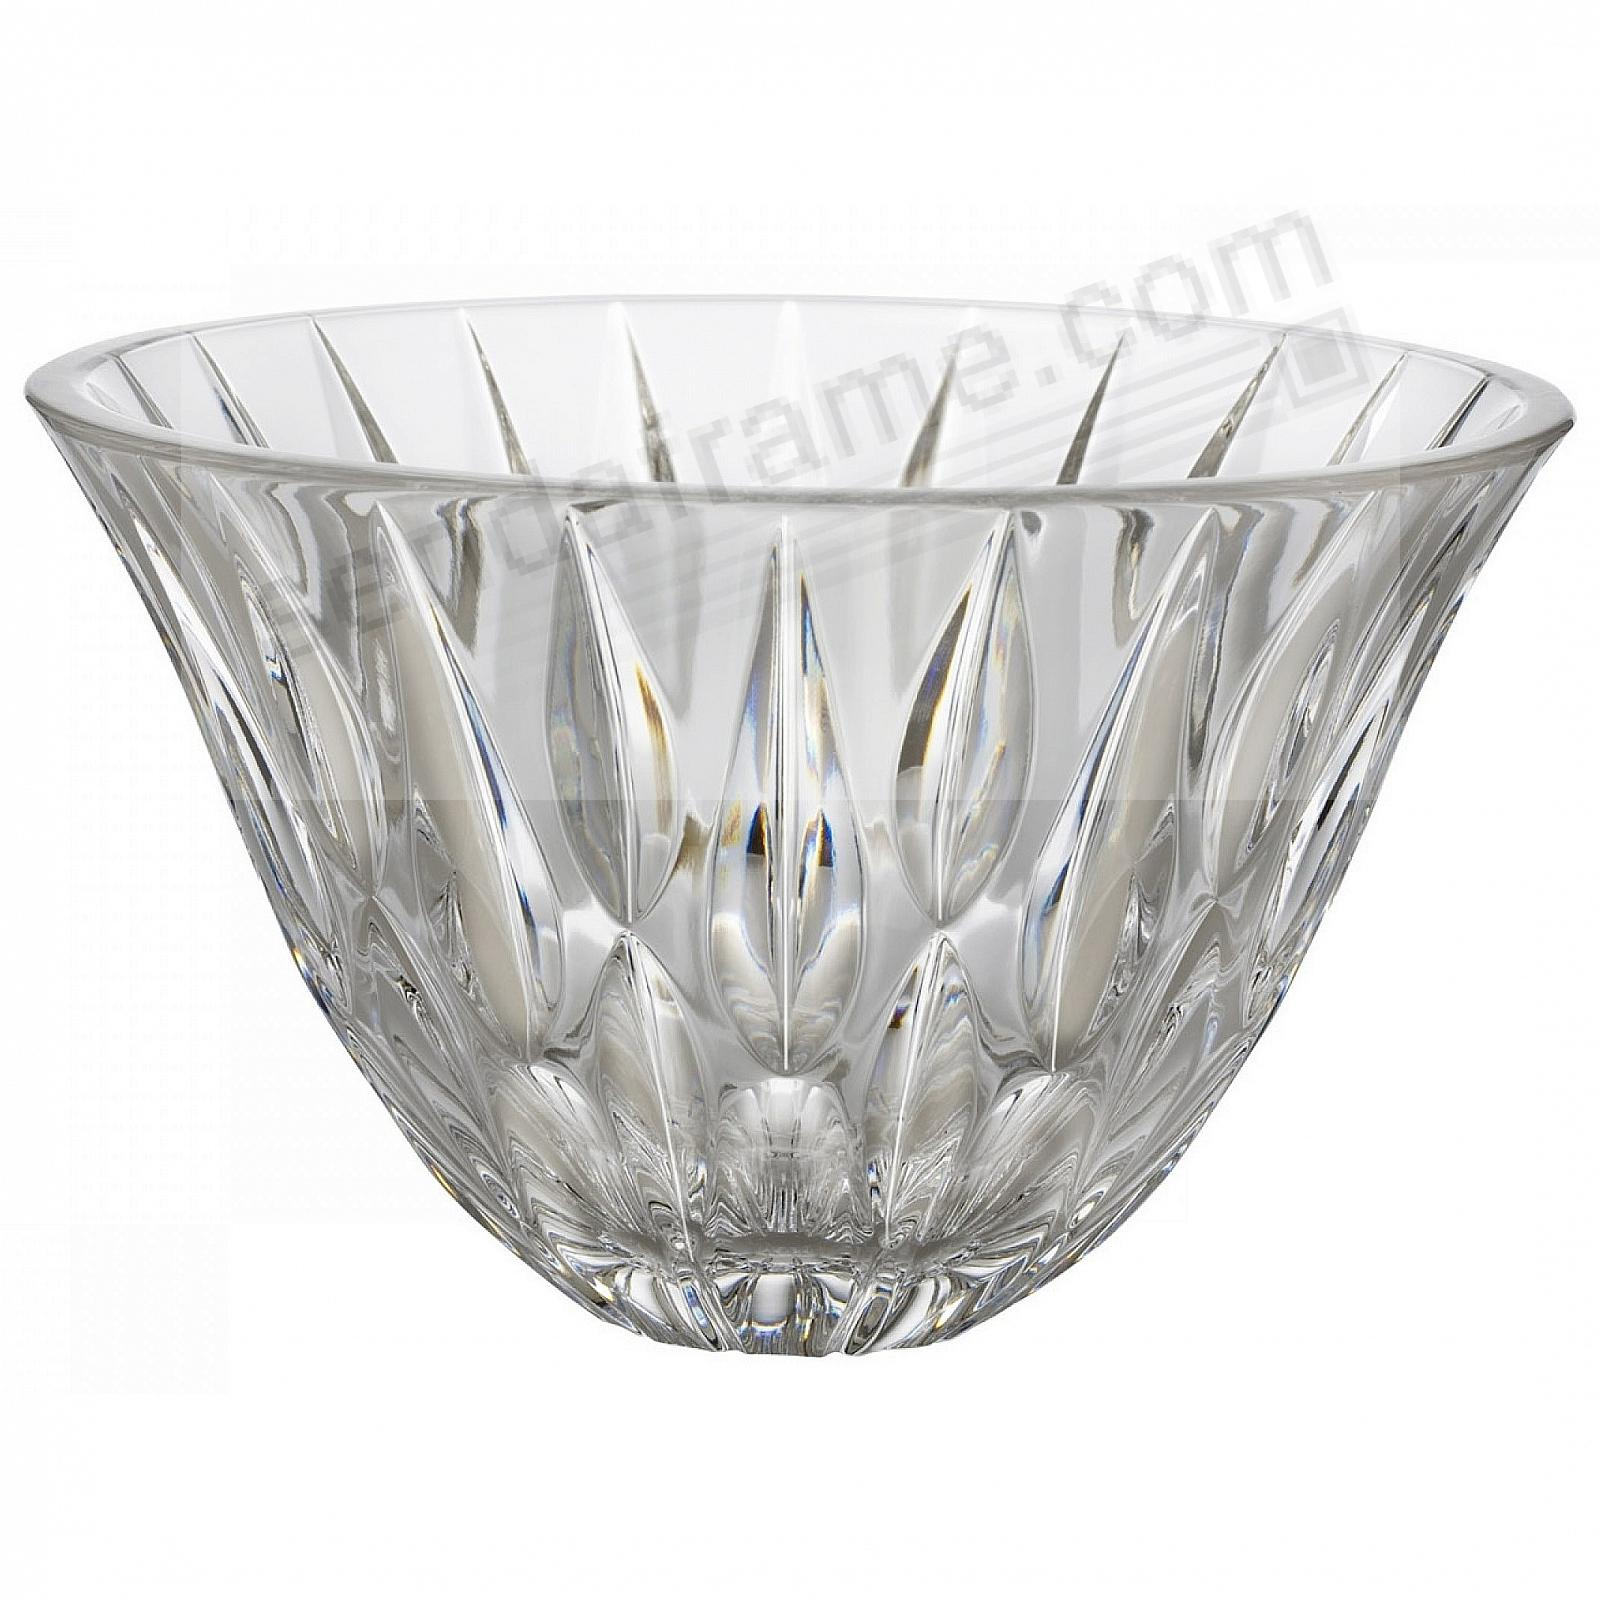 The Original RAINFALL 8inch Crystal Marquis by Waterford® Bowl